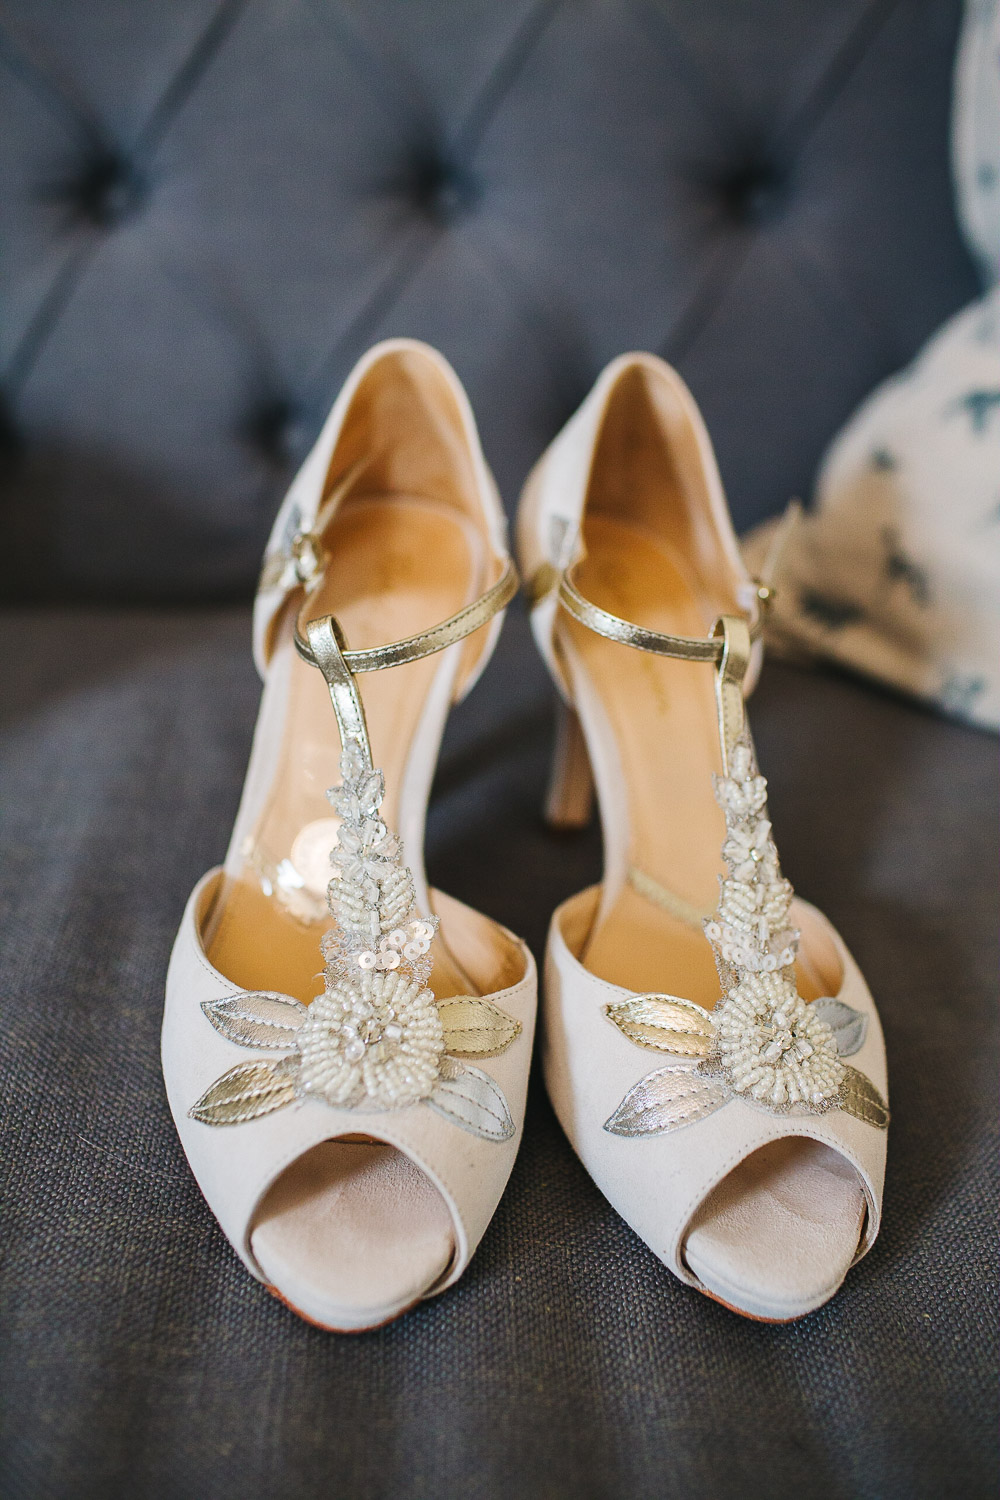 bf700eac67fd83 18 of the Most Wanted Wedding Shoes for 2018 Brides